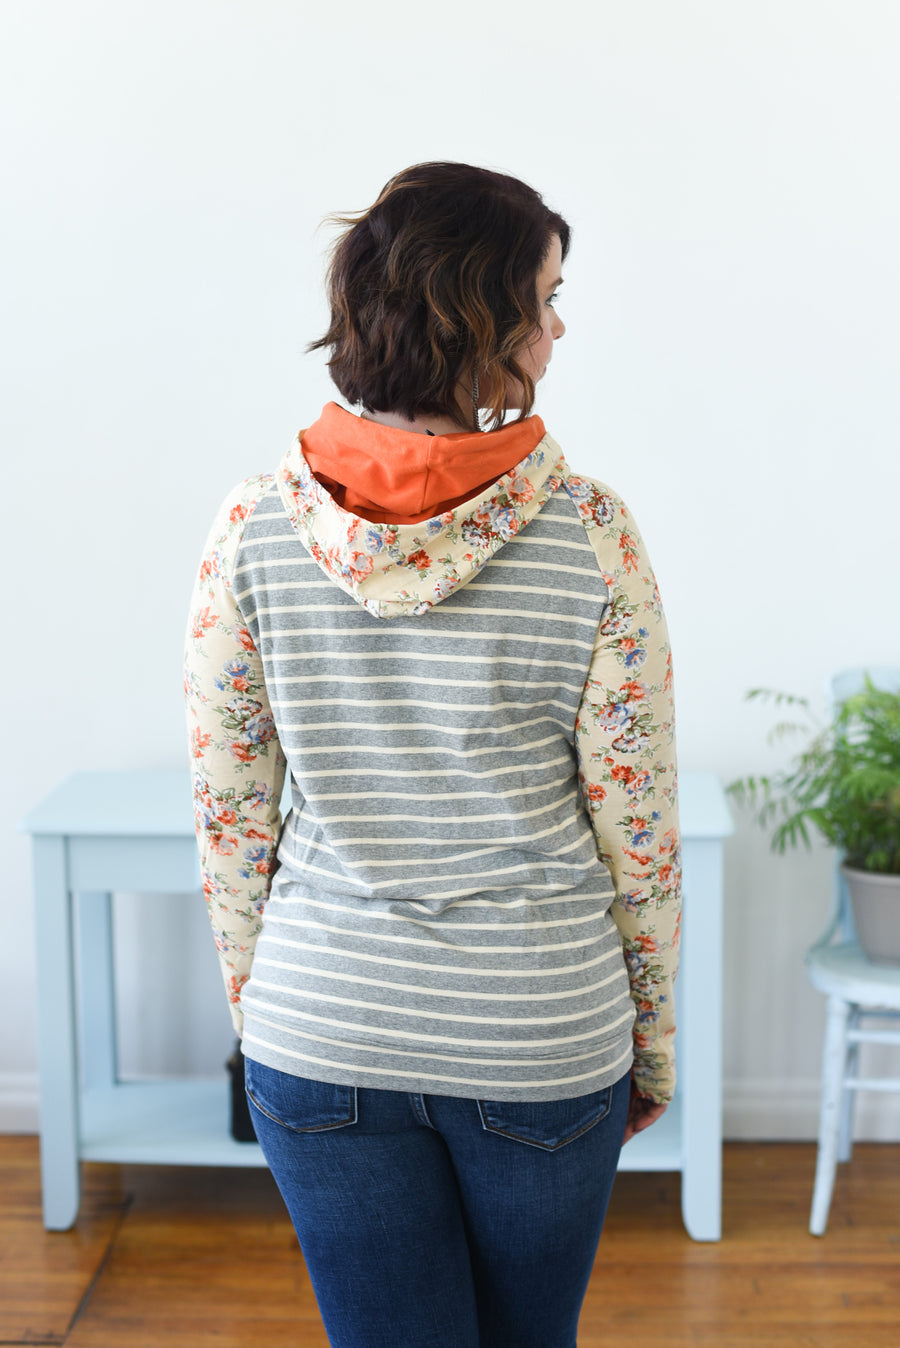 DoubleHood™ Sweatshirt -  Orange Floral Accent